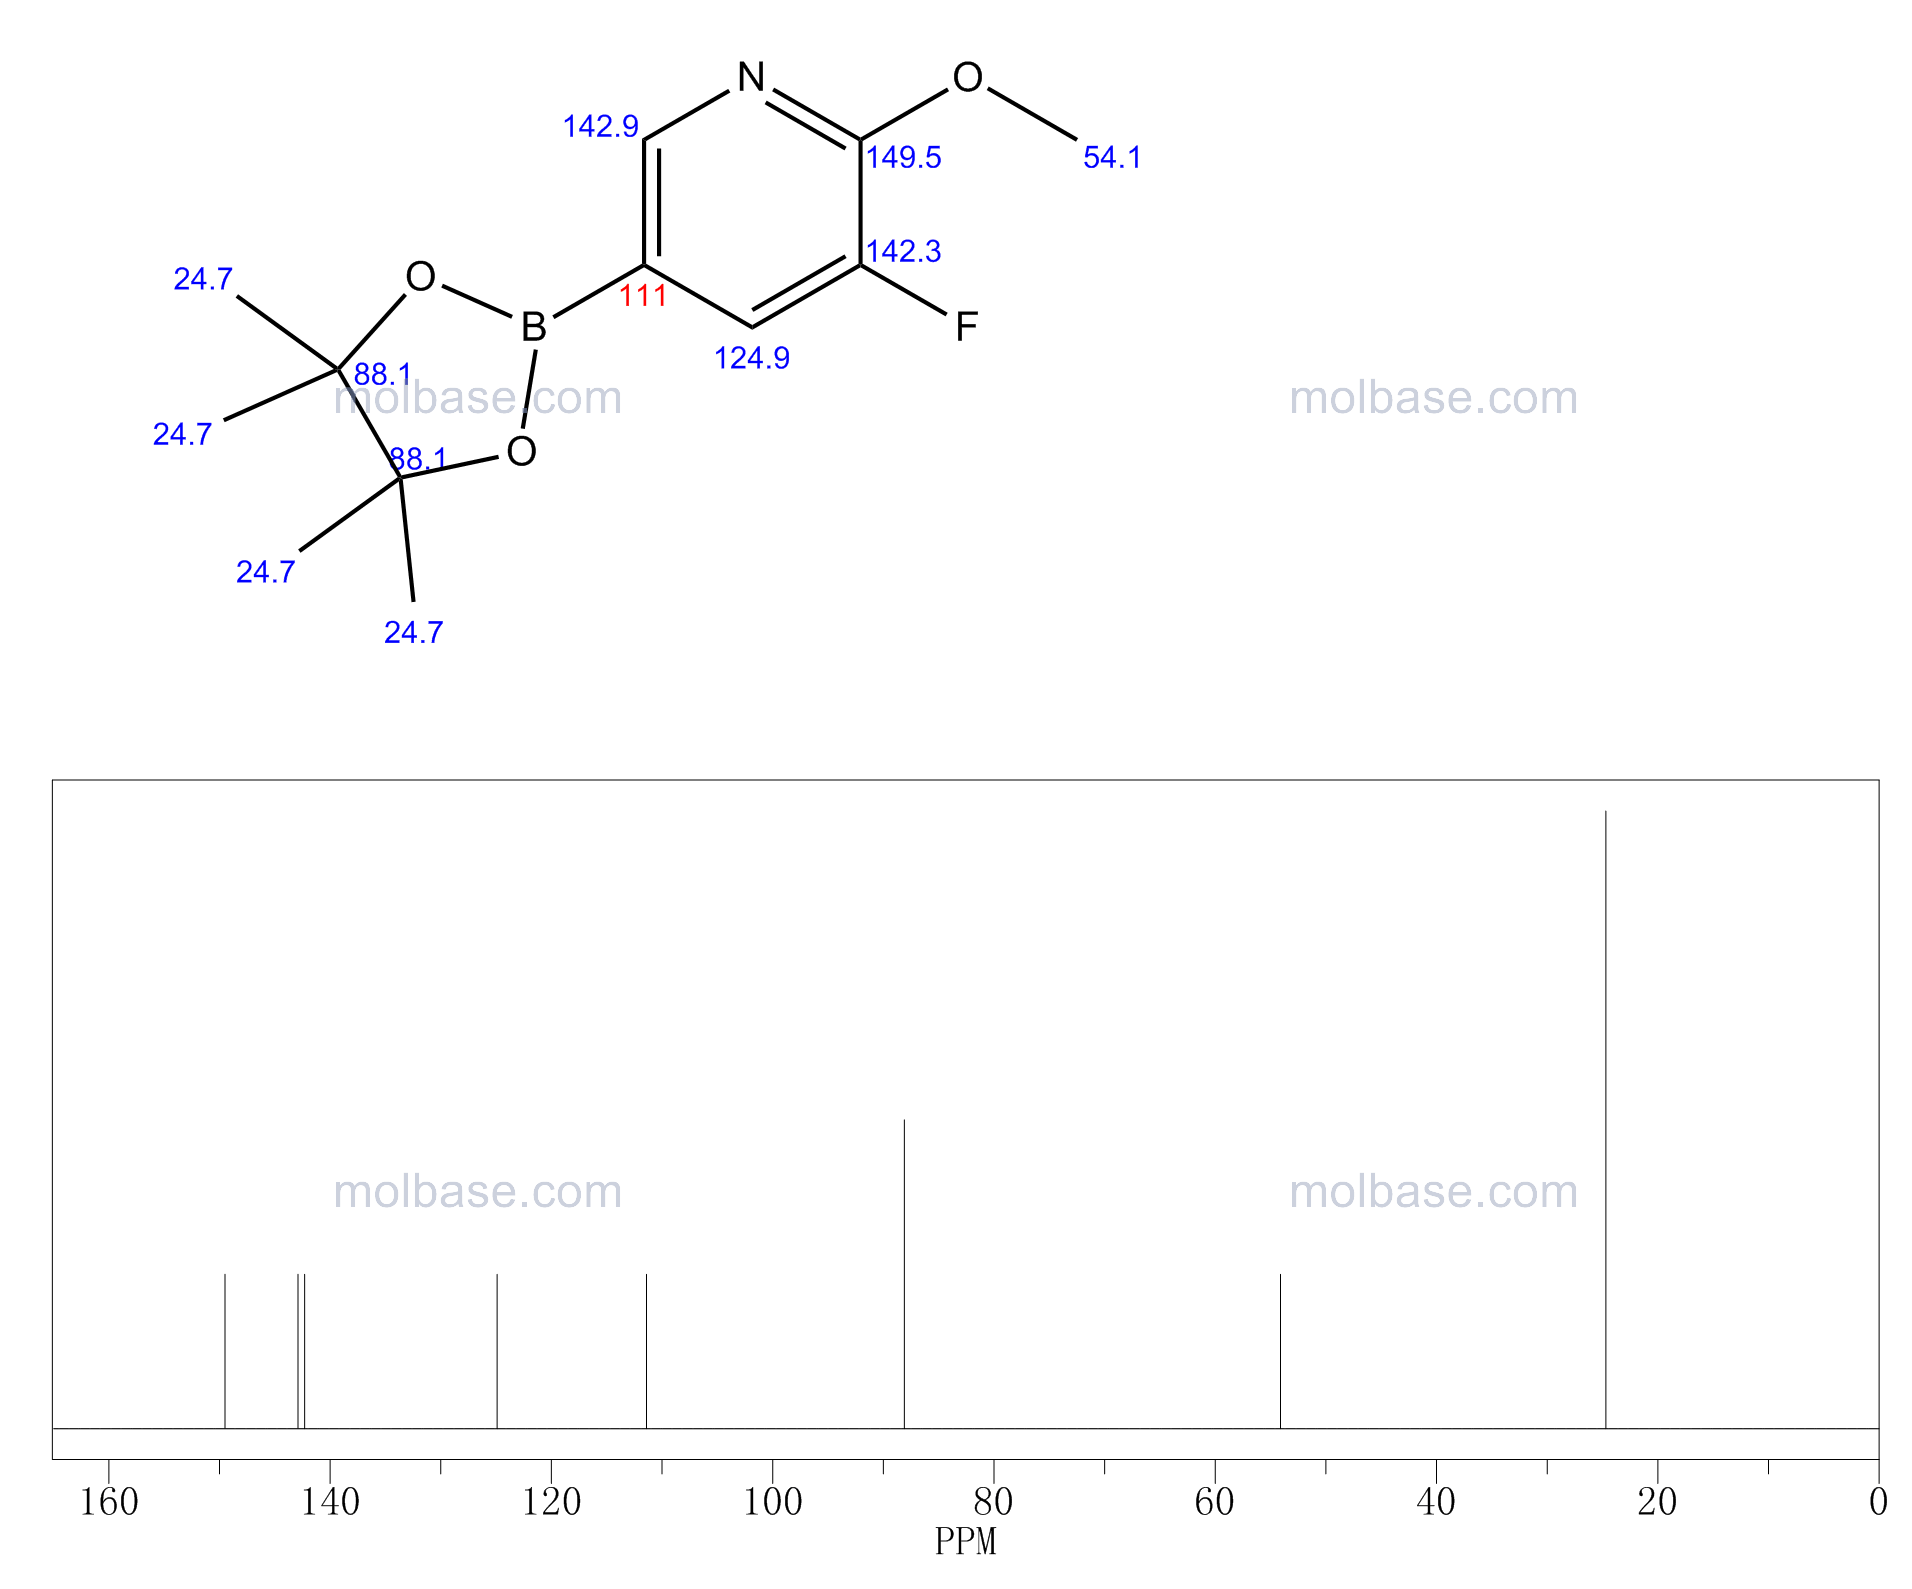 3-Fluoro-2-methoxy-5-(4,4,5,5-tetramethyl-1,3,2-dioxaborolan-2-yl)pyridine NMR spectra analysis, Chemical CAS NO. 1310384-35-0 NMR spectral analysis, 3-Fluoro-2-methoxy-5-(4,4,5,5-tetramethyl-1,3,2-dioxaborolan-2-yl)pyridine C-NMR spectrum